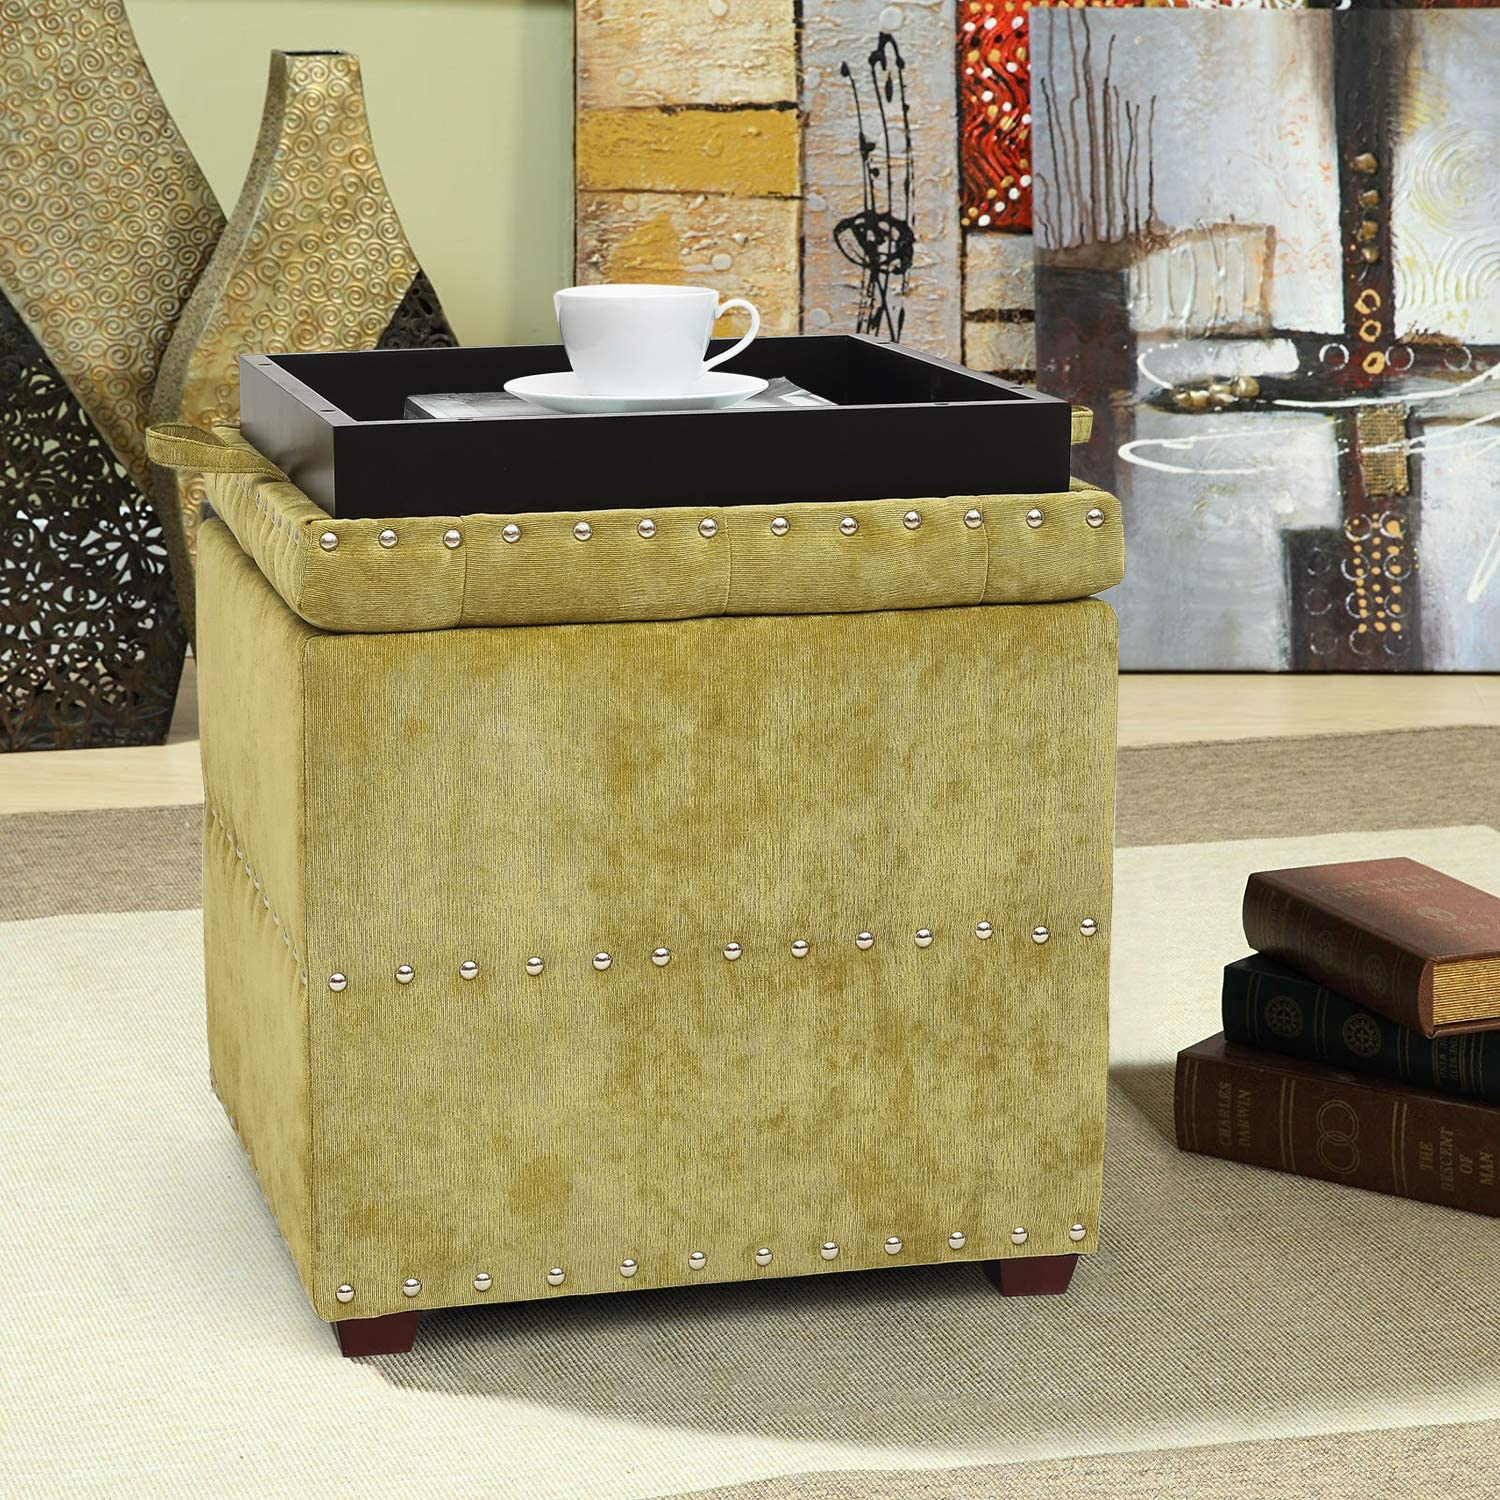 Asense Square Fabric Ottoman with Tray Credence Cube Storage Free shipping on posting reviews Ott